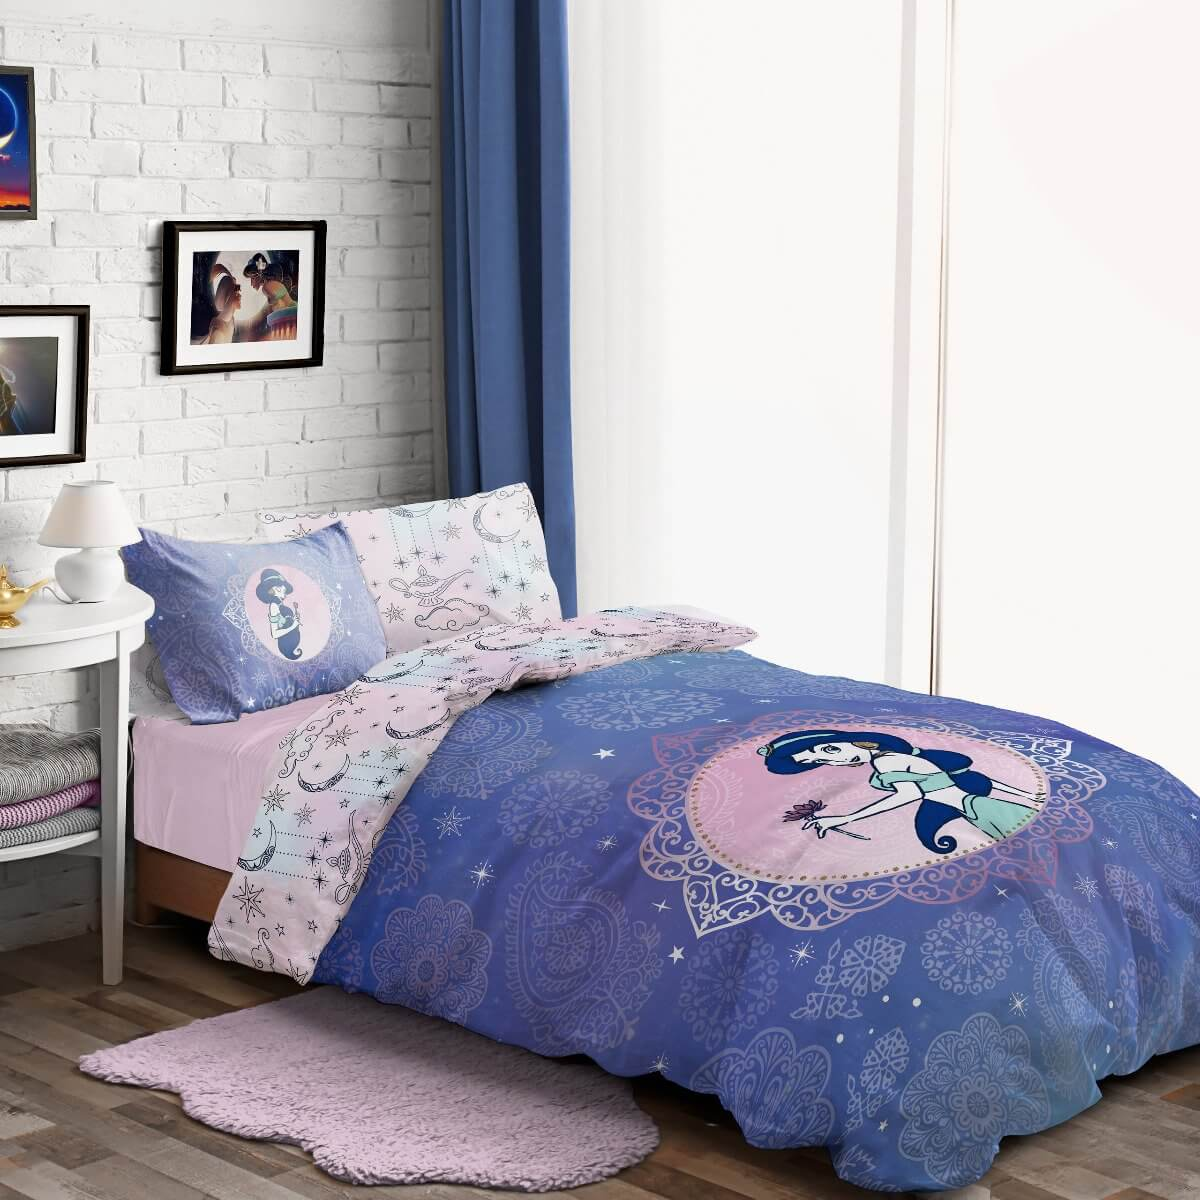 Aladdin Pretty As Paisley Bedding - Reversible Duvet Cover and Pillowcase Set